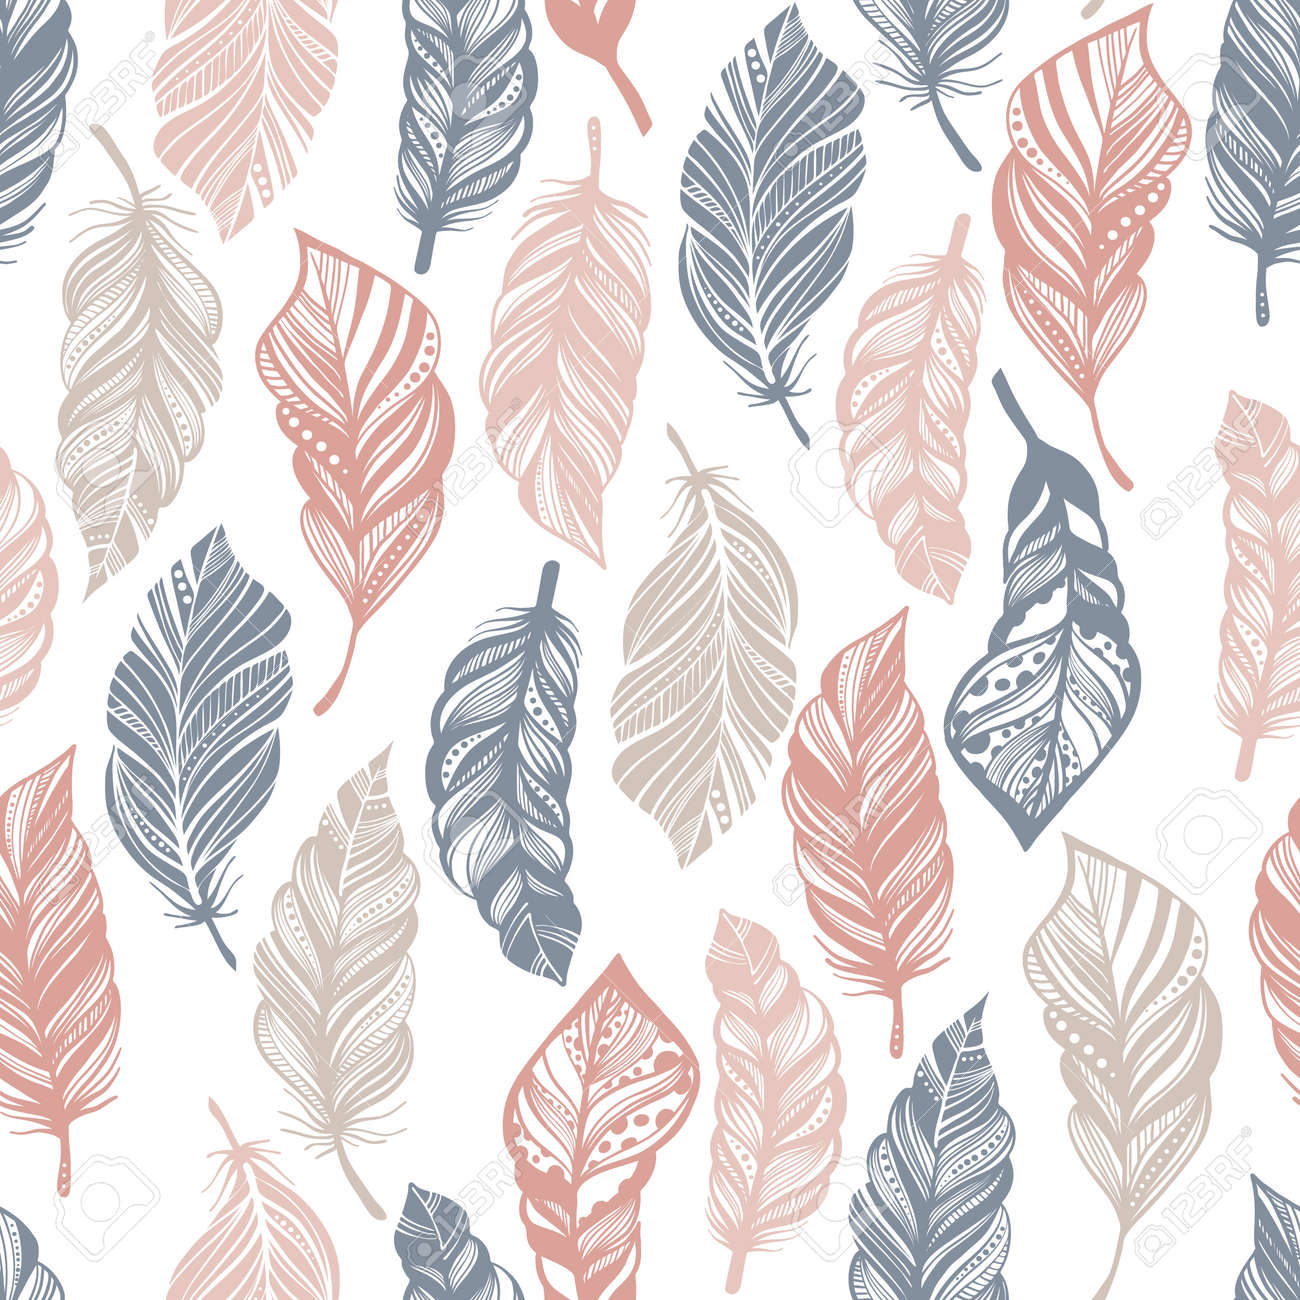 Seamless Pattern With Feathers Isolated On White Background